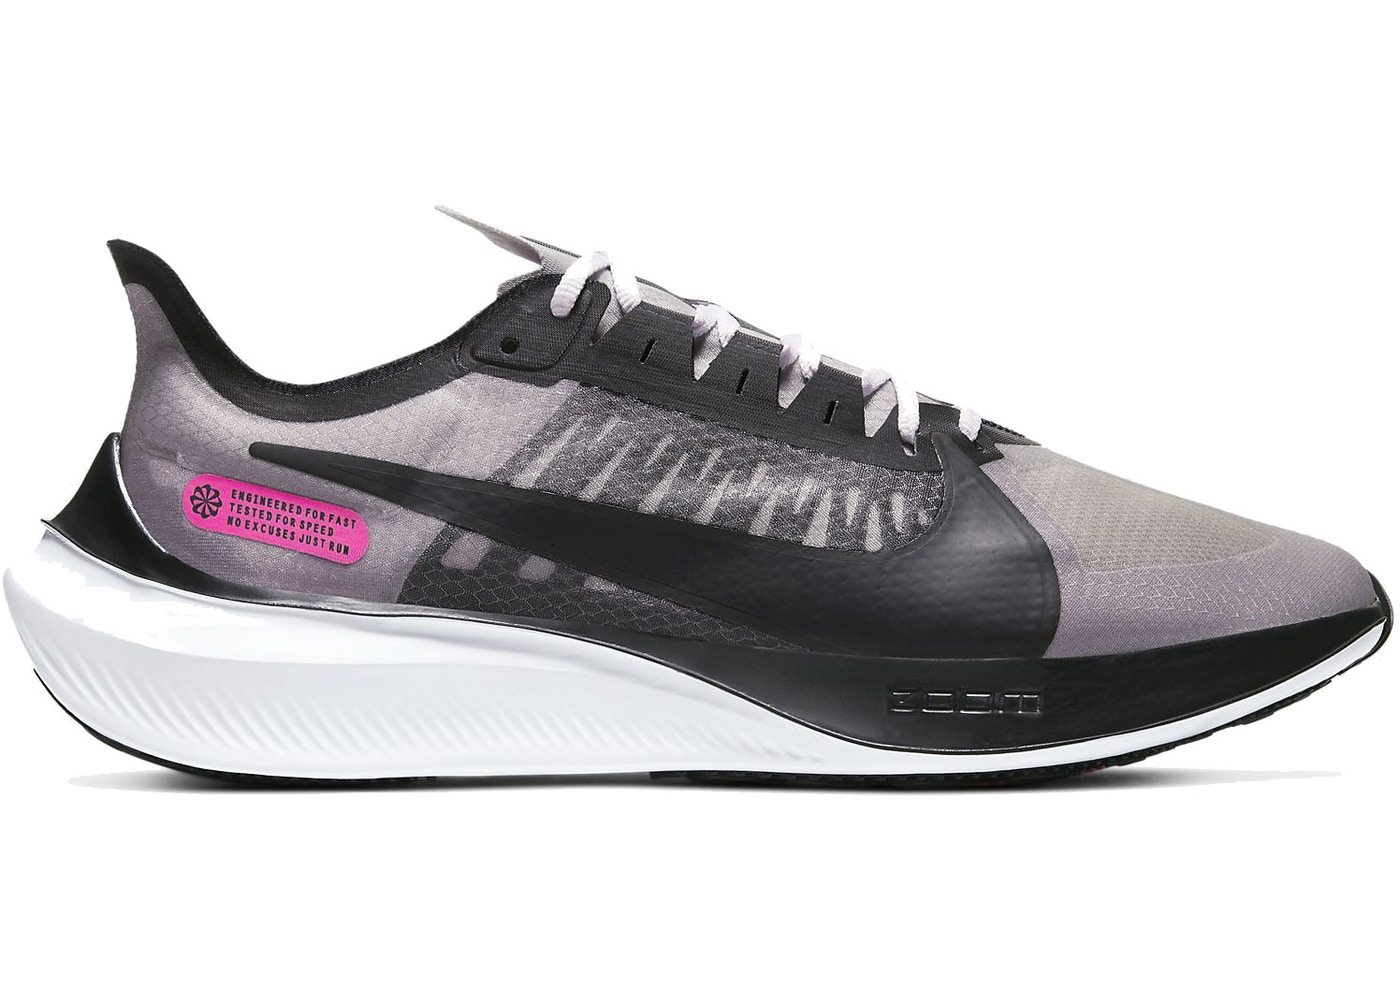 Playa Hacer deporte arena  Nike Zoom Gravity Atmosphere Grey - BQ3202-006